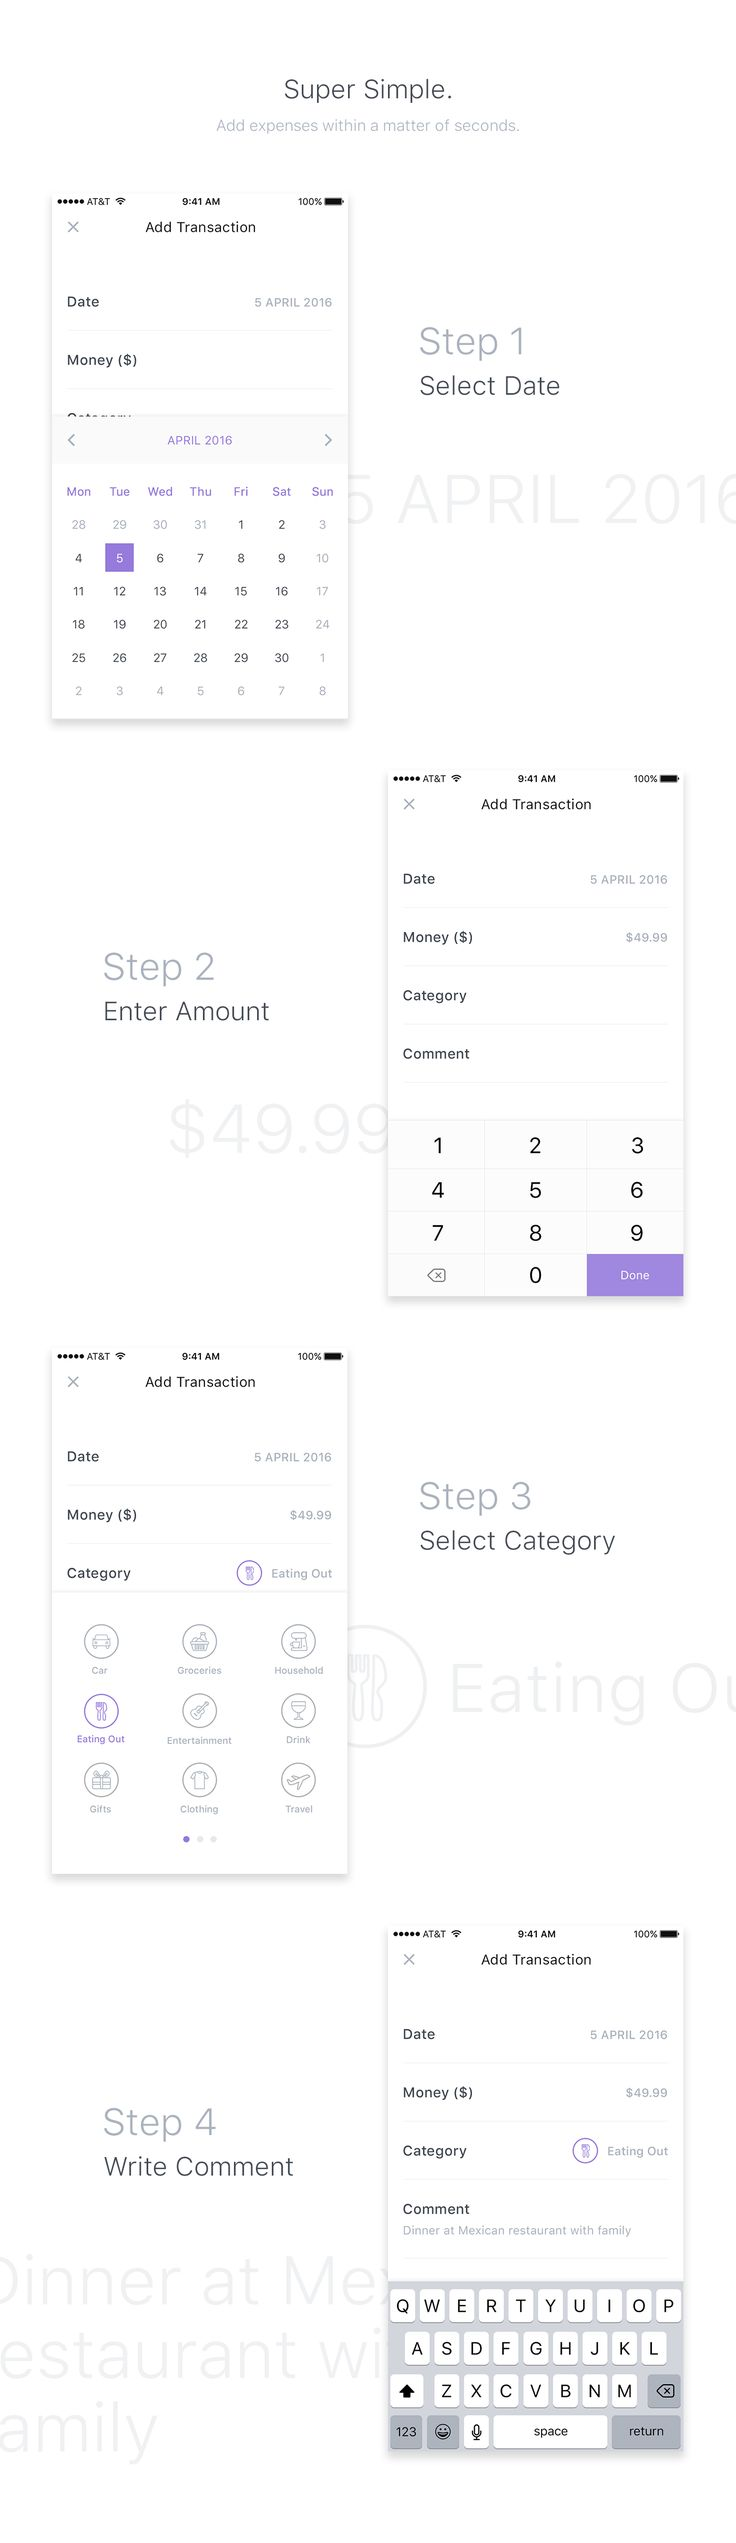 Expensr is a fast and easy way to track and manage your personal expenses on the go.It is completely a conceptual app. I designed this concept to showcase my visual UI design skills. If you like this project, then please do appreciate, comment and share…